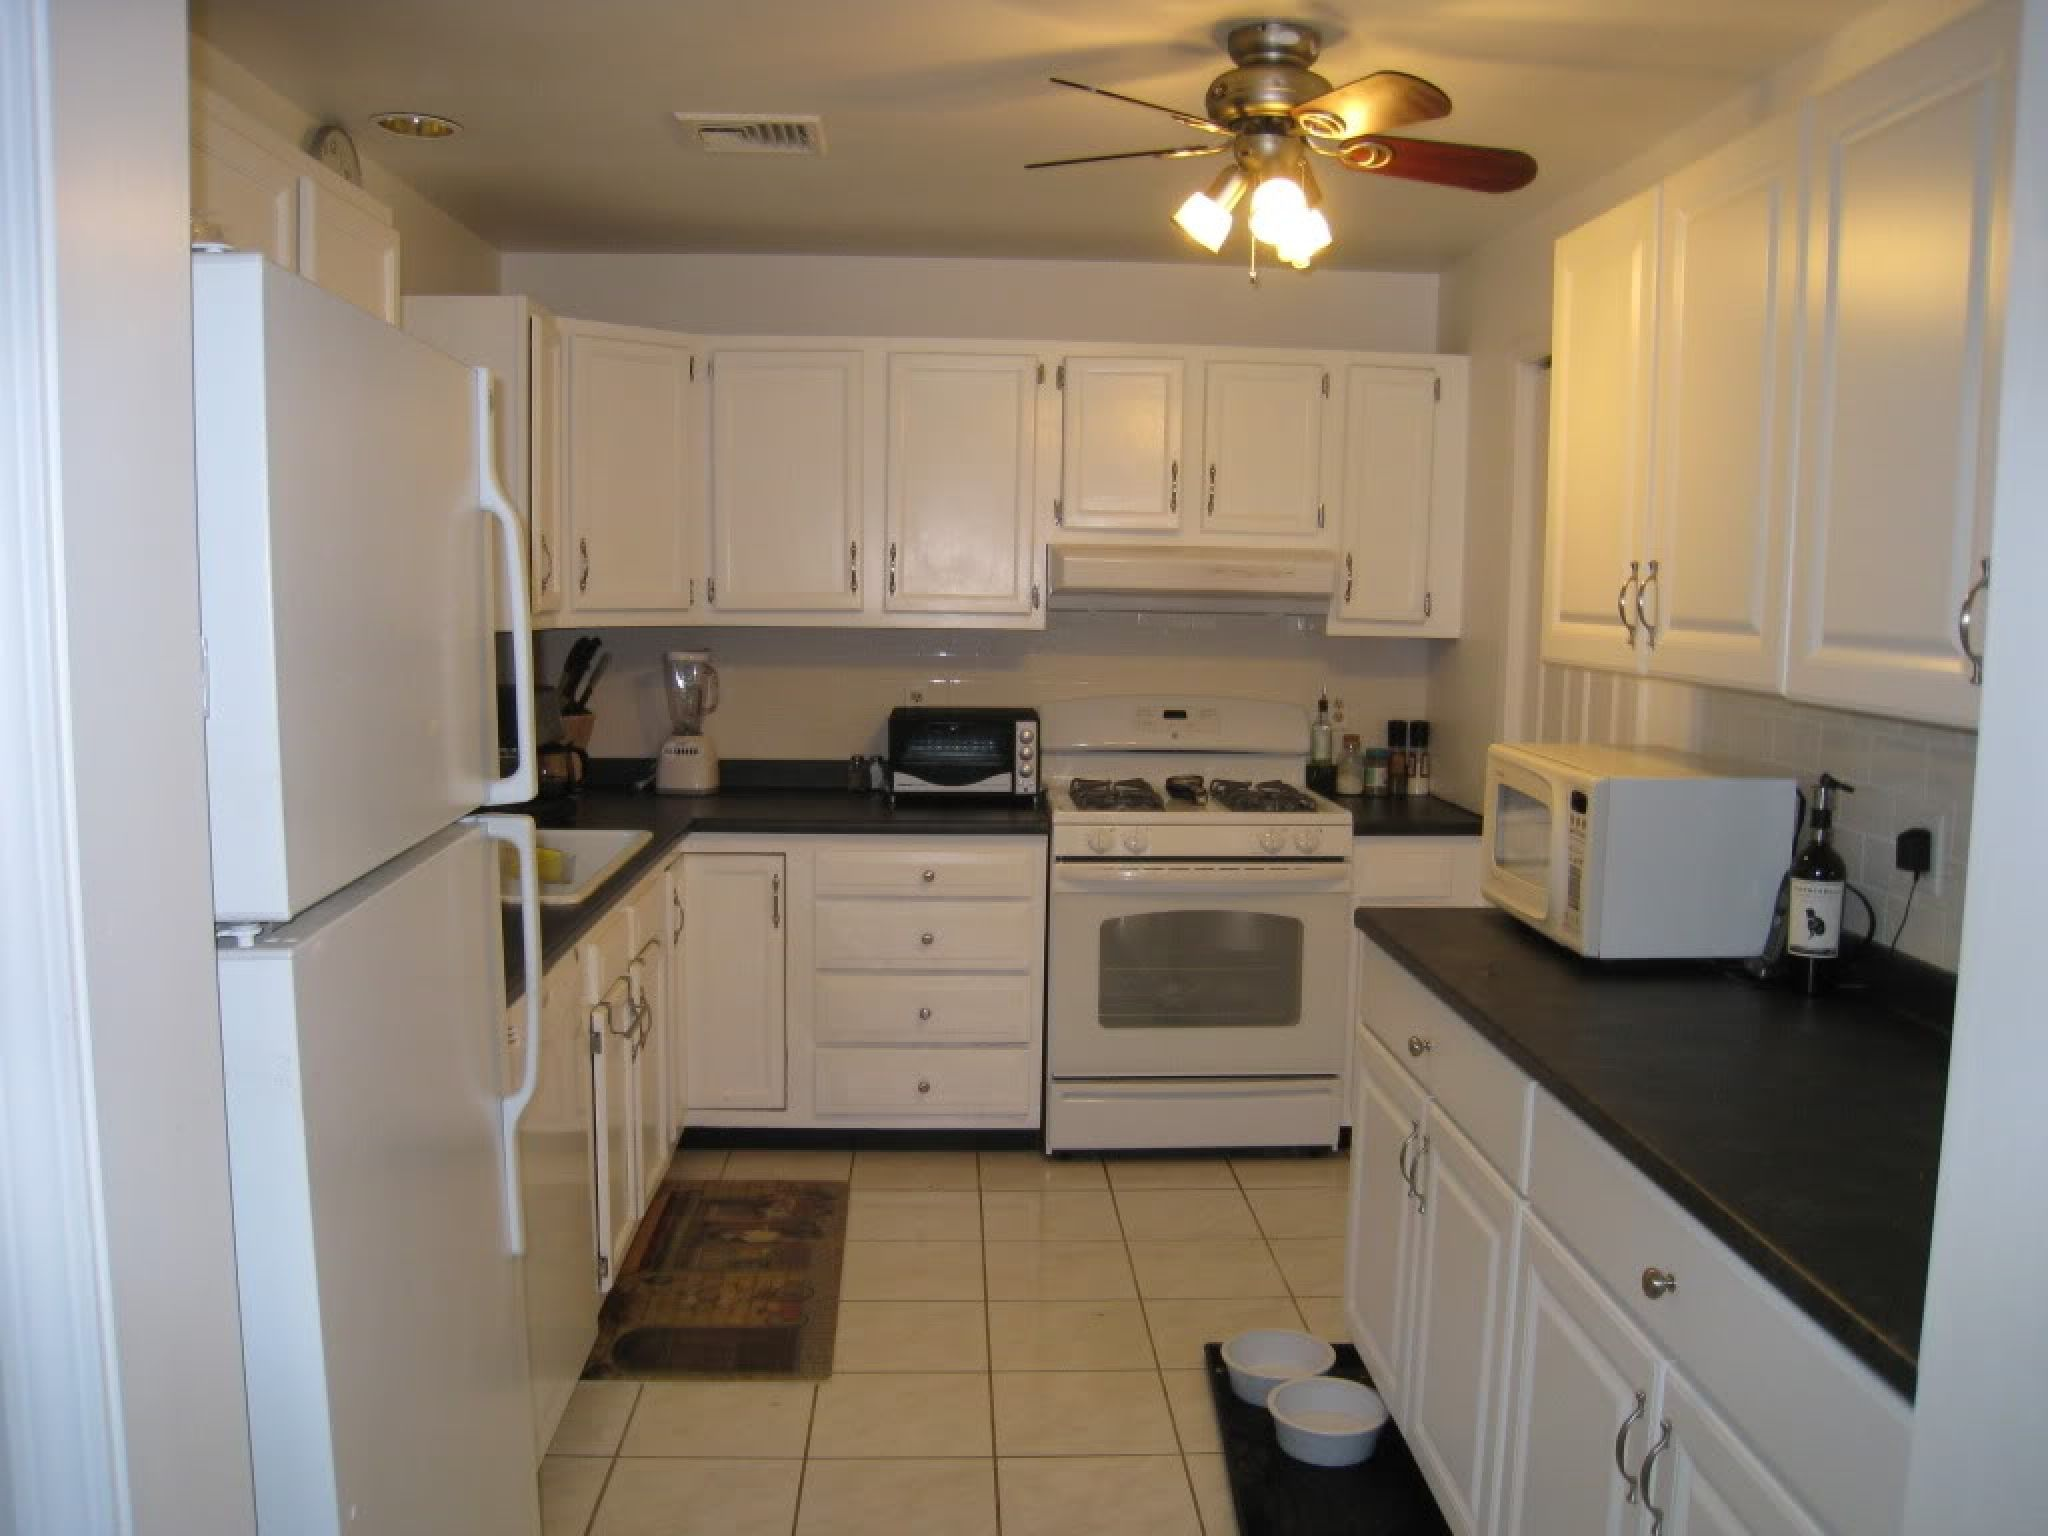 Lowes Kitchen Cabinet Refacing Country Ideas On A Budget Check More At Http